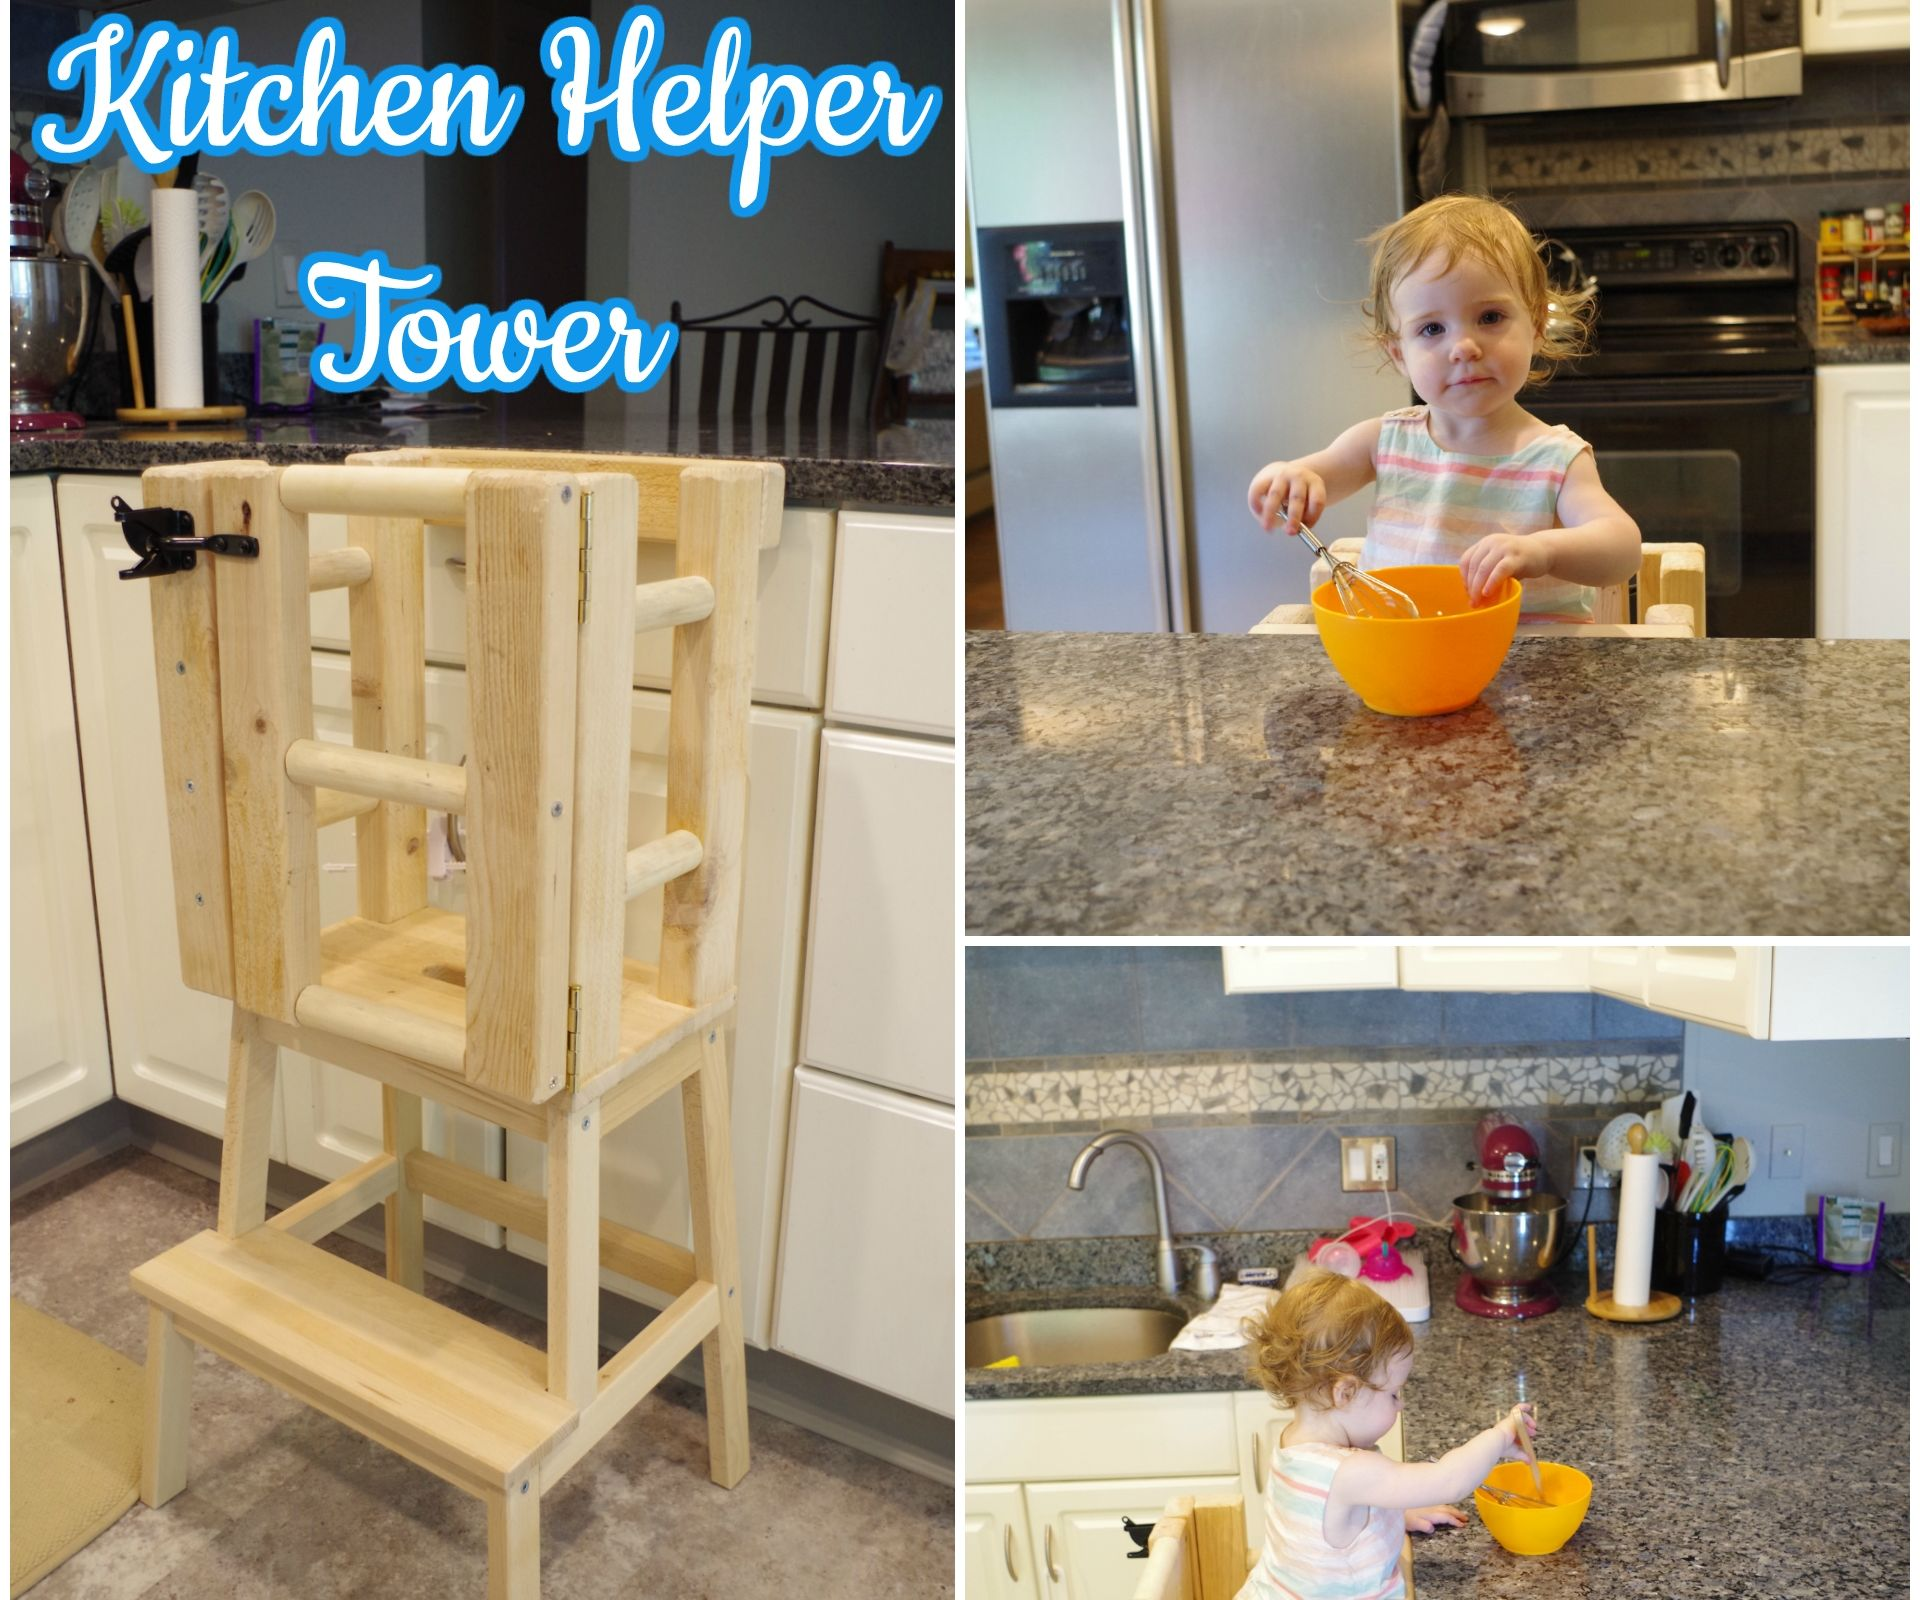 Admirable Kitchen Helper Tower 8 Steps With Pictures Gmtry Best Dining Table And Chair Ideas Images Gmtryco